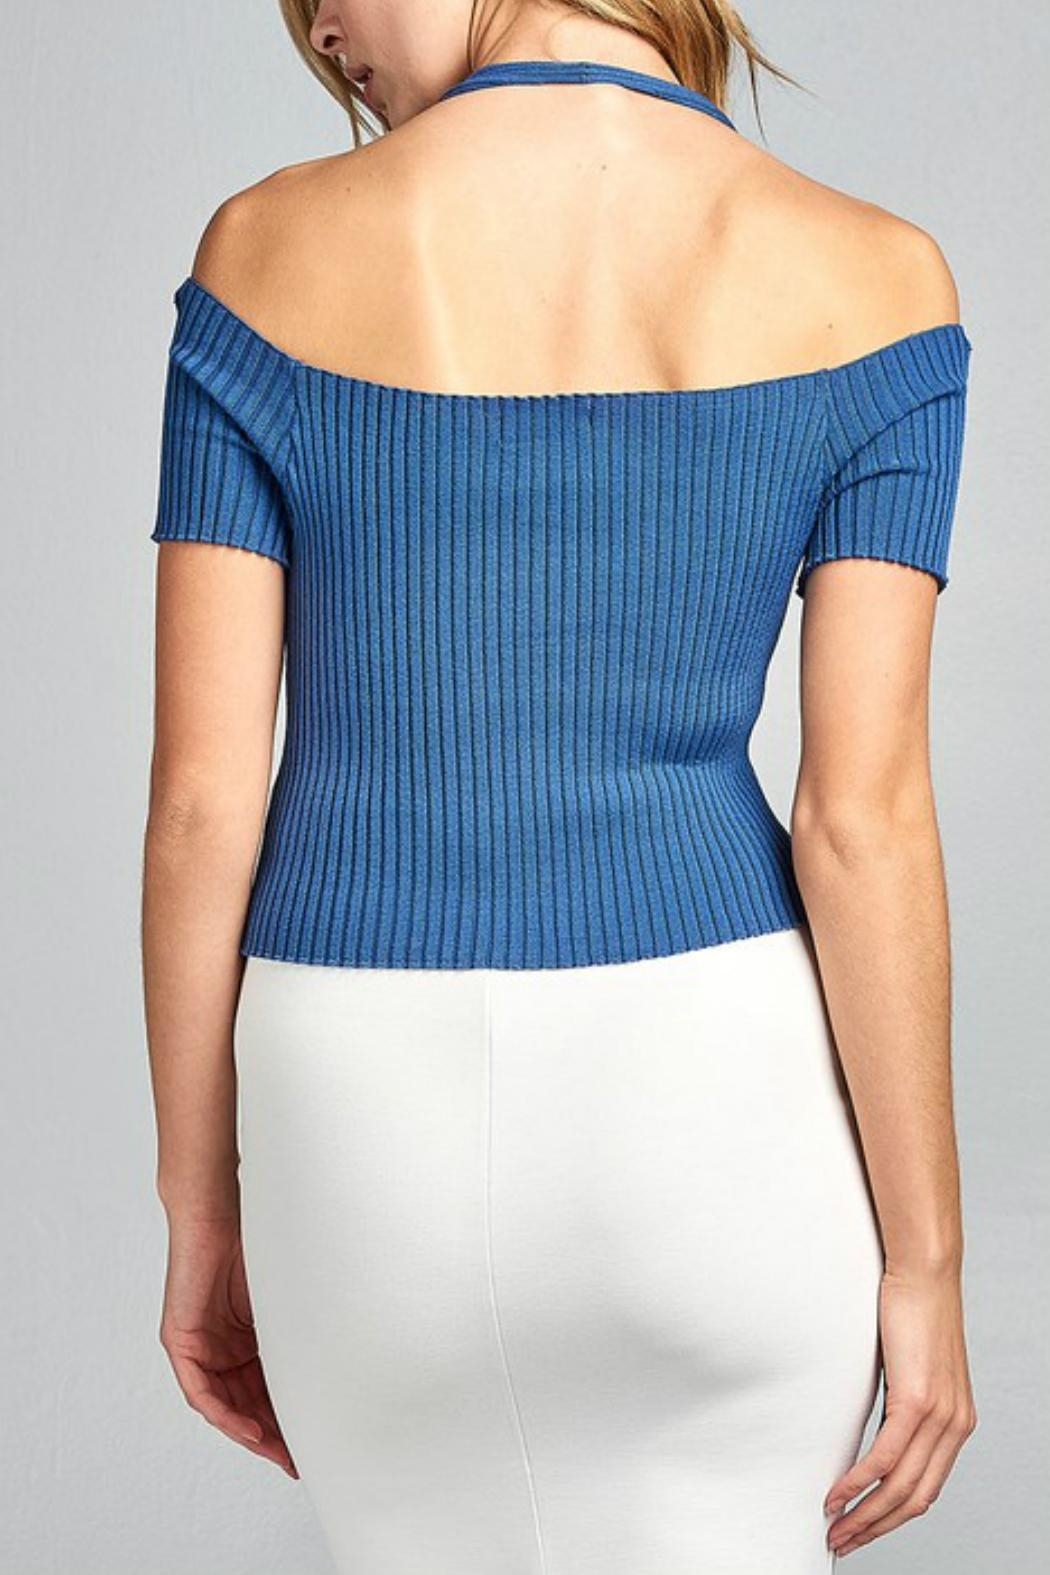 Minx Blue Ribbed Top - Front Full Image